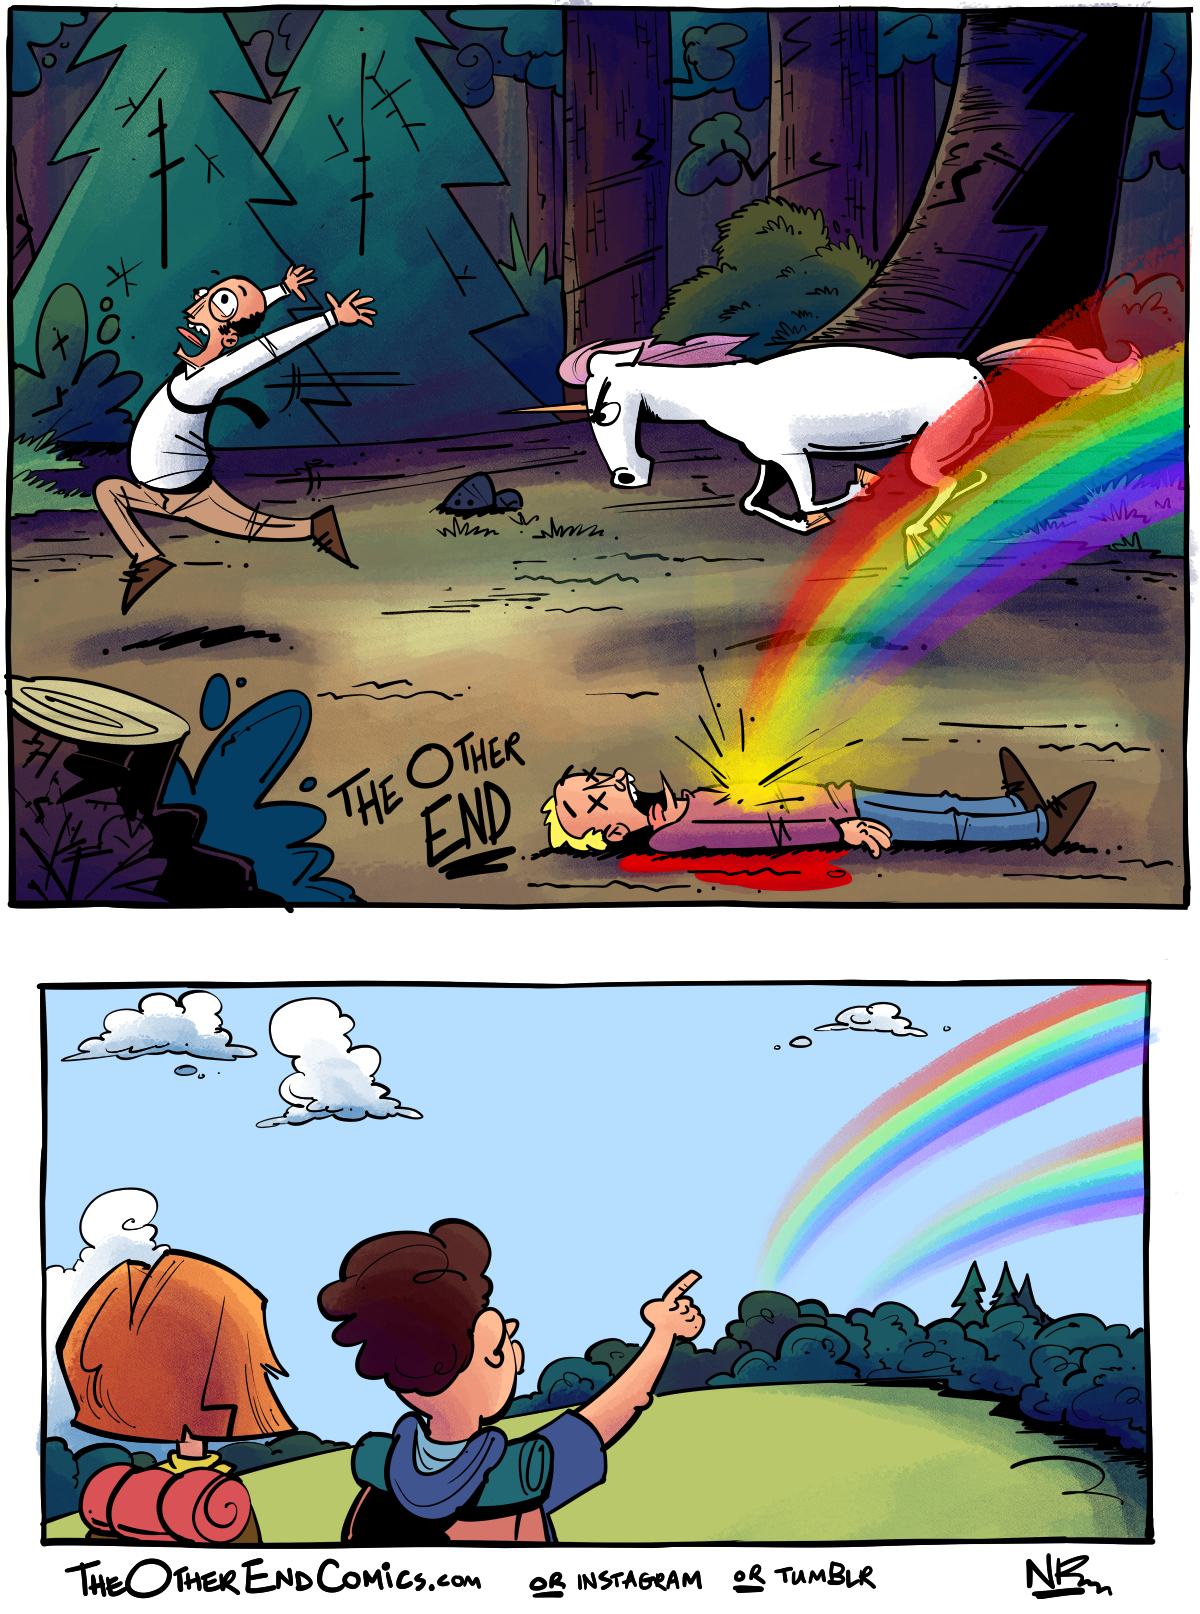 Rainbows aren't even real. This comic is so fake.